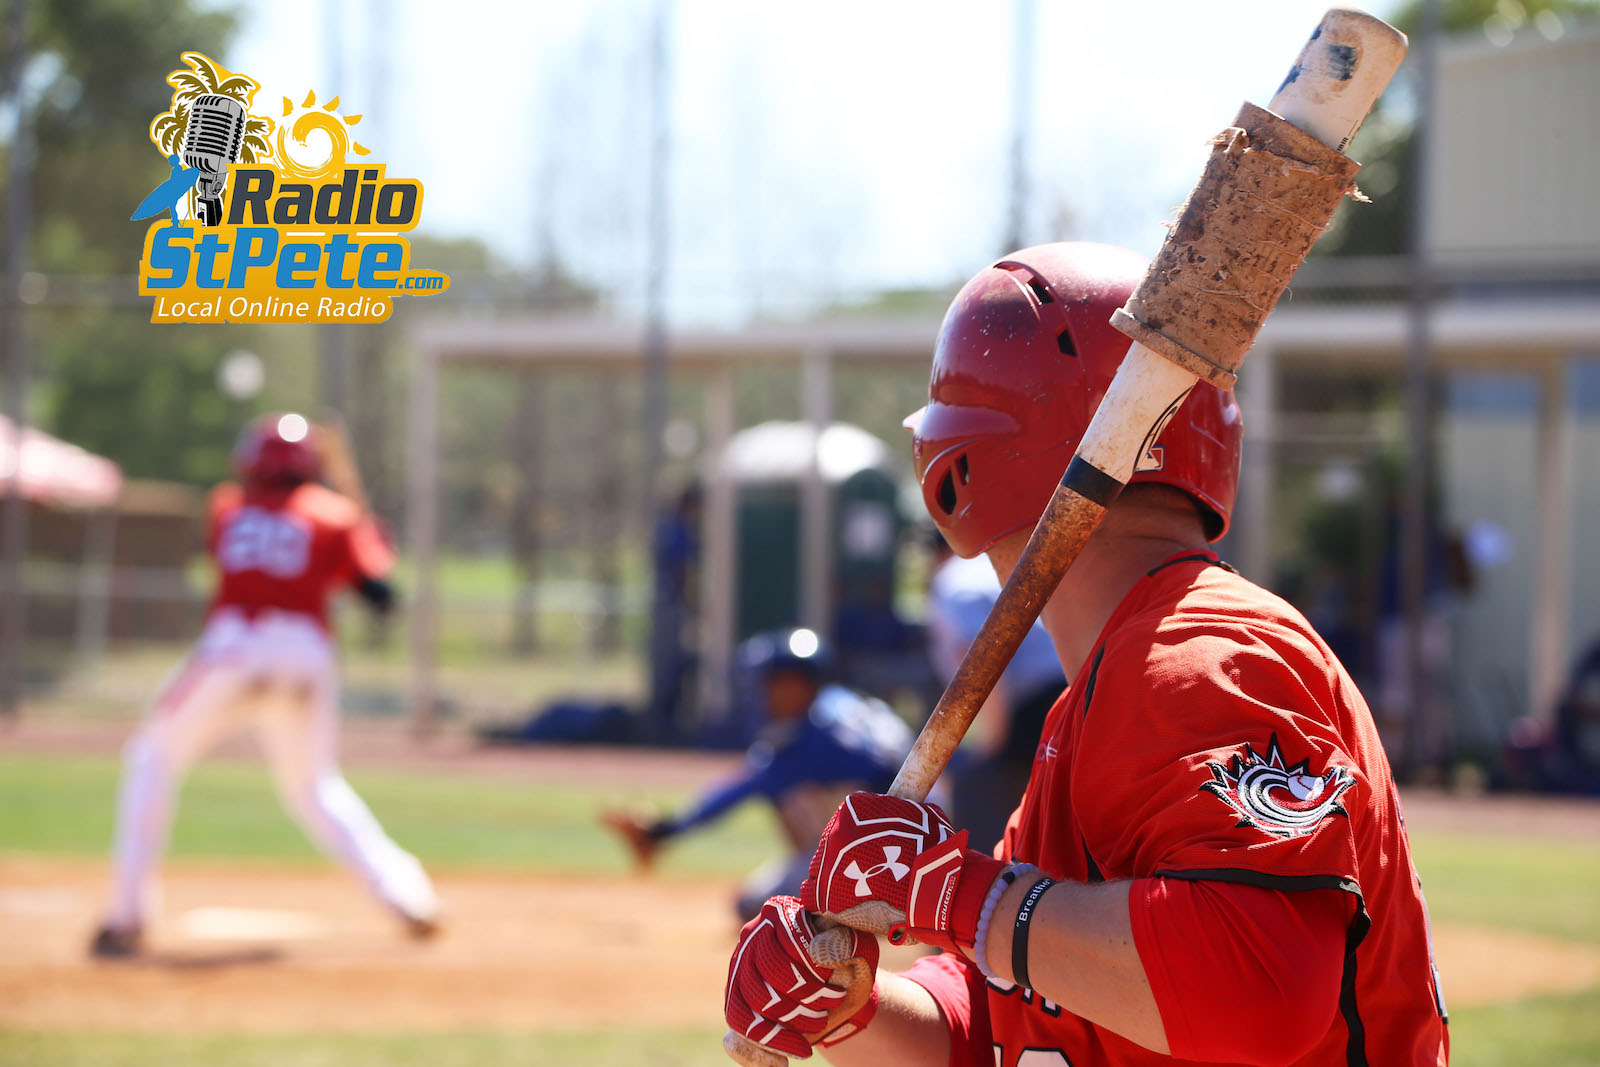 Listen to Junior National Team spring training online!